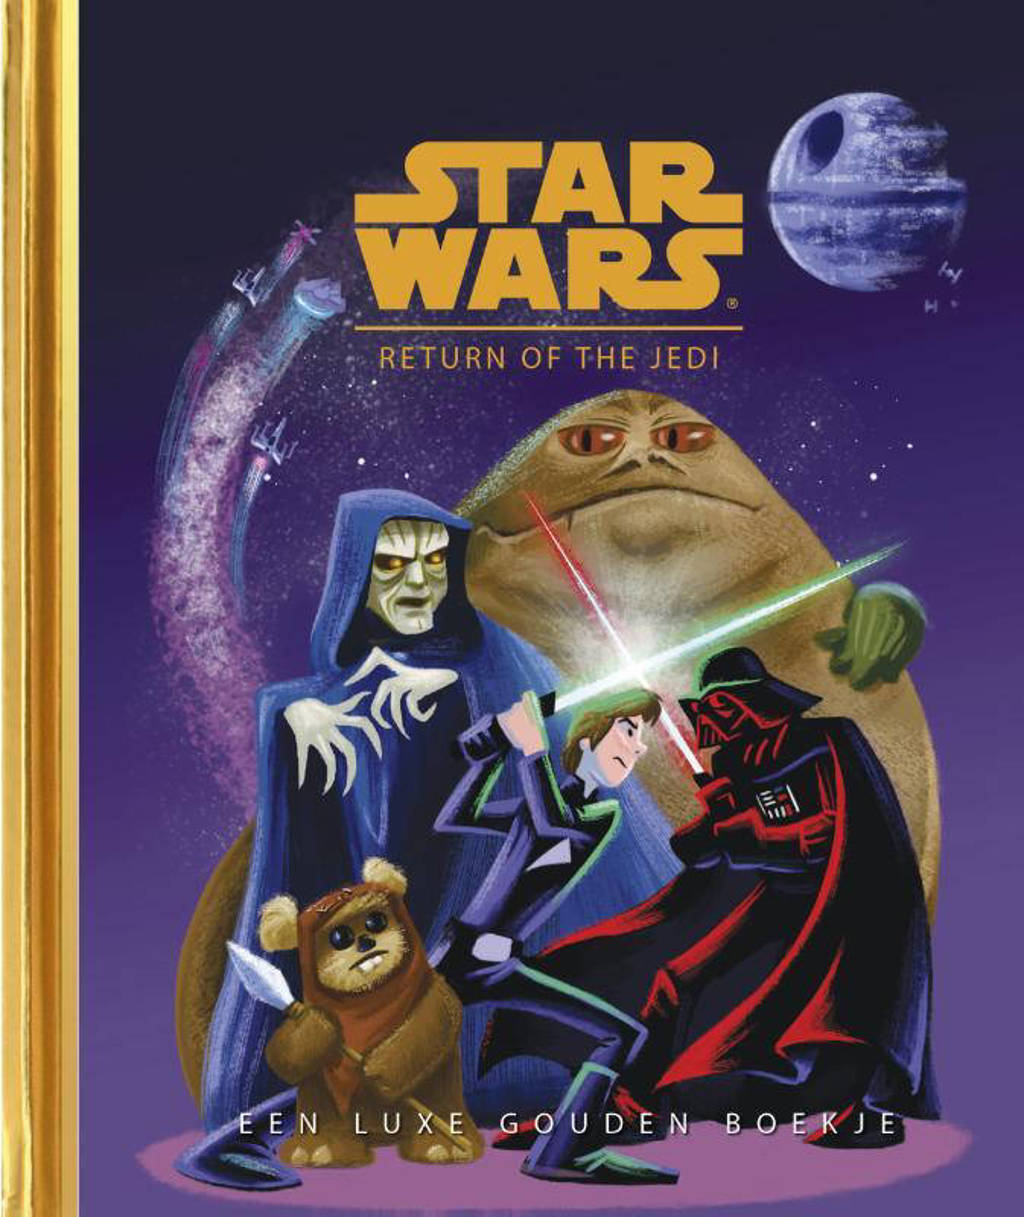 Gouden Boekjes - Star Wars: Return of the Jedi